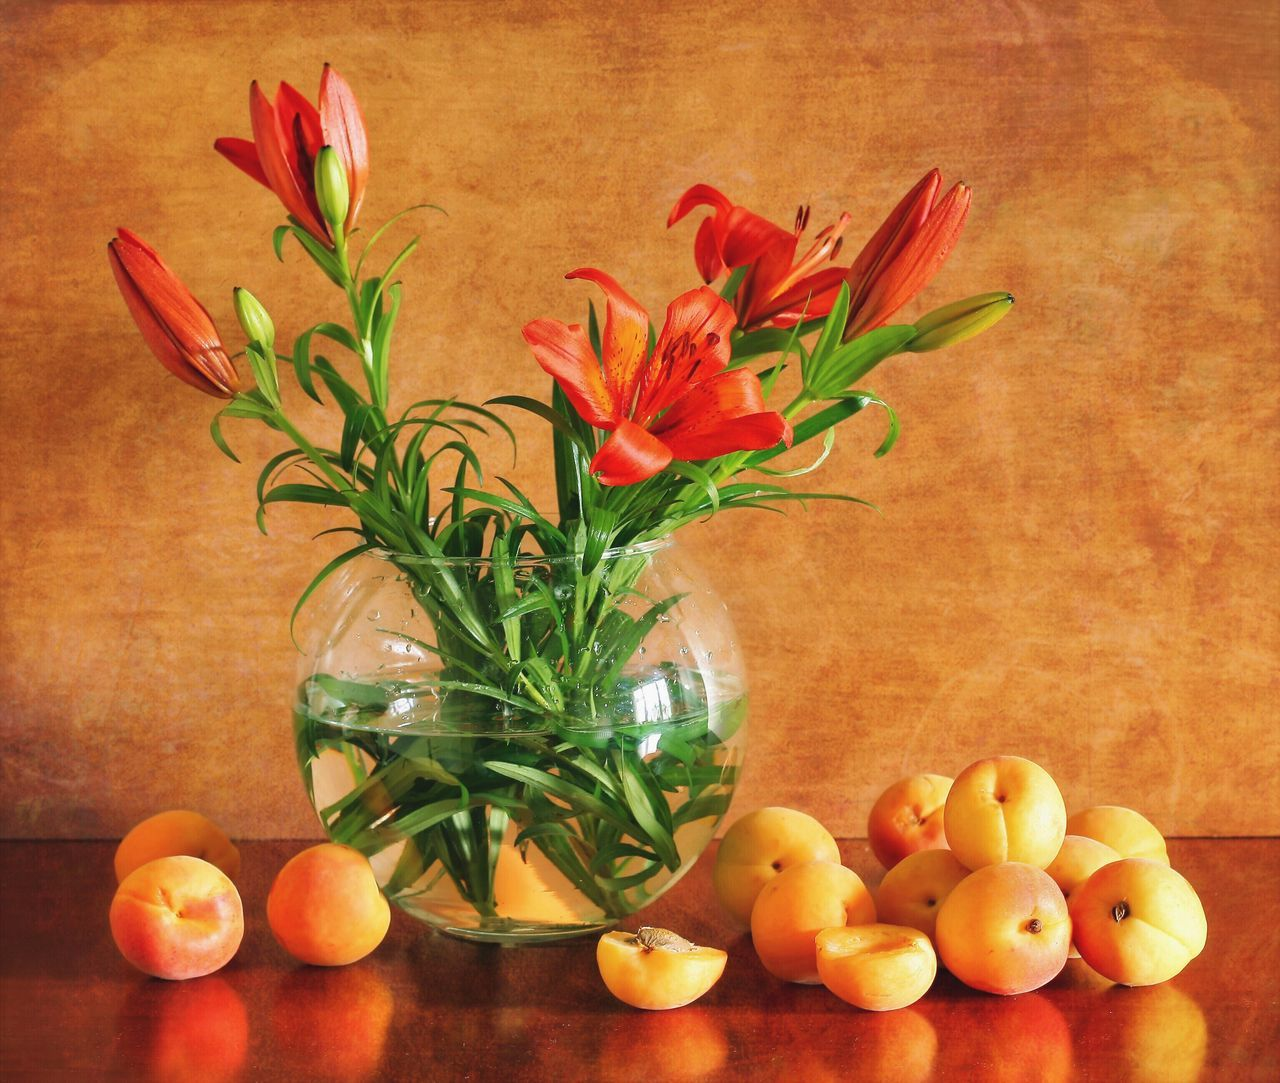 Still life with Lilies and Apricots Flower Freshness No People Fragility Plant Indoors  Nature Beauty In Nature Close-up Still Life Photography Still Life Summertime Summer Bouquet Beauty In Nature Nature Flower Arrangement Bunch Of Flowers Freshness Table Orange Color